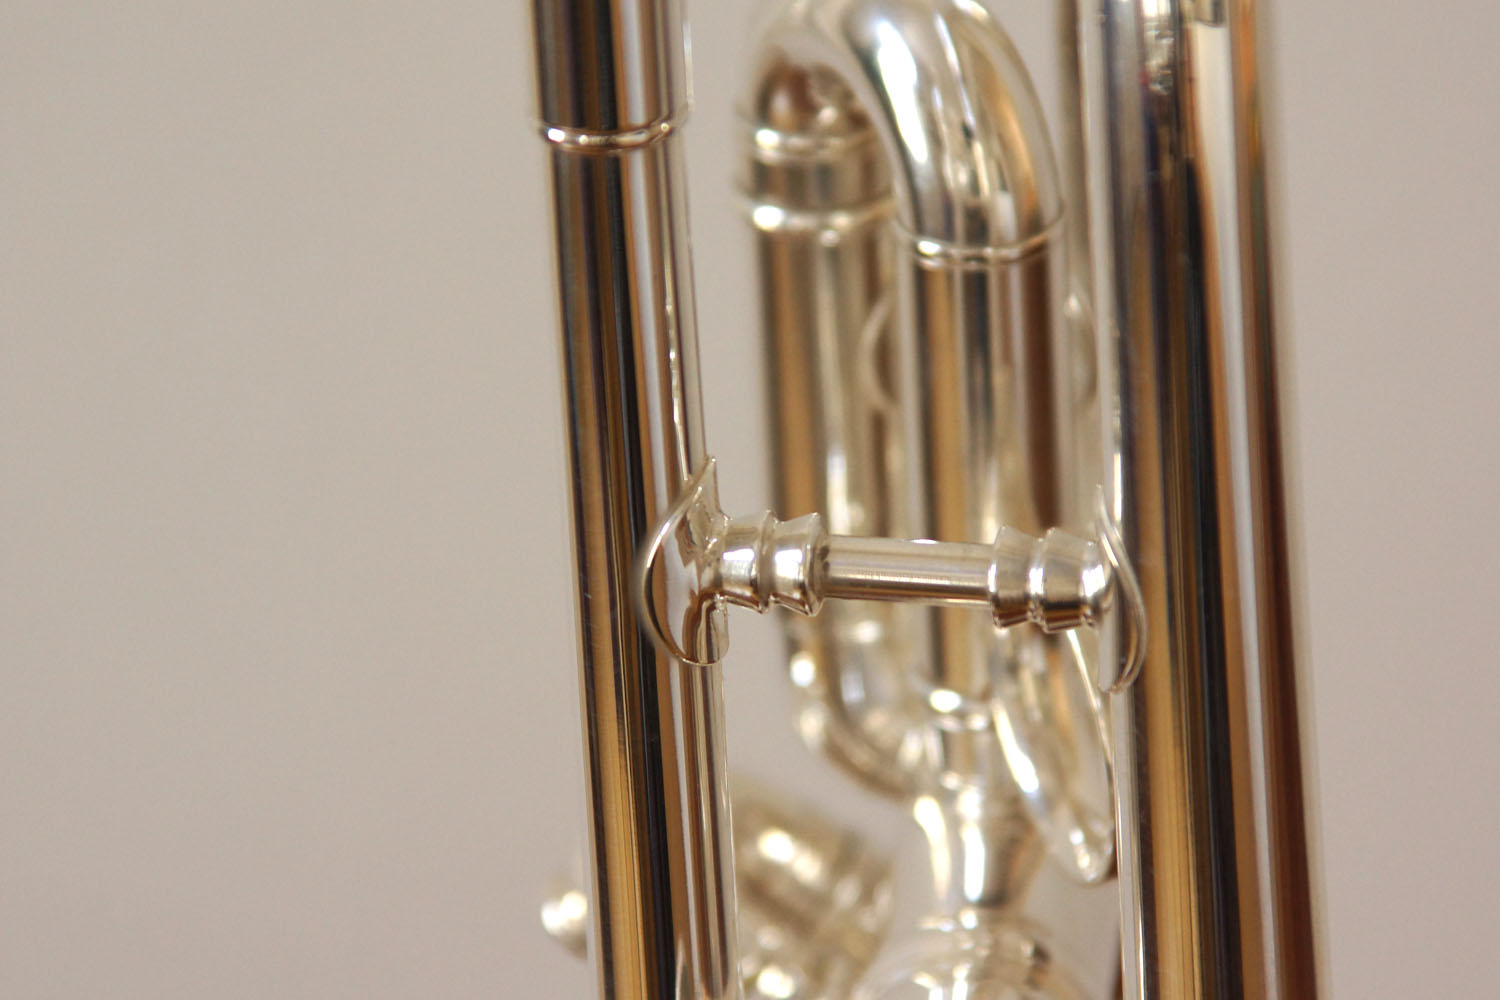 trumpetscout_conn-1b-vintage-one-4